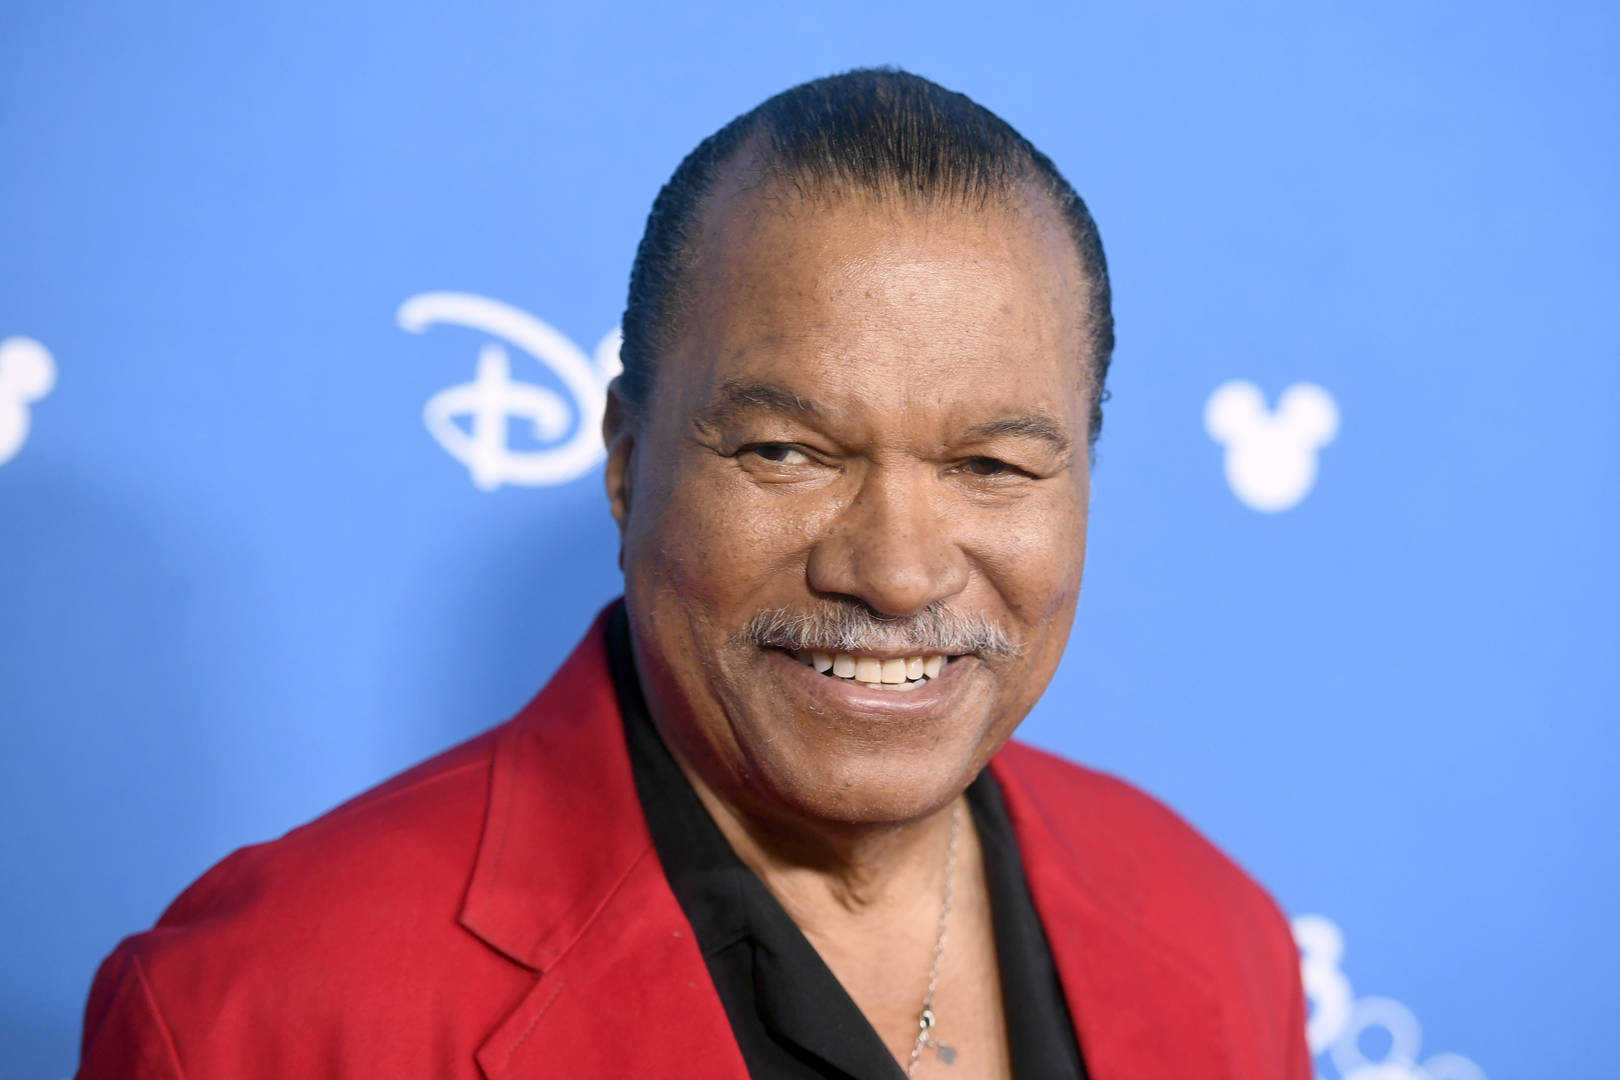 Hollywood legend Billy Dee Williams has come out